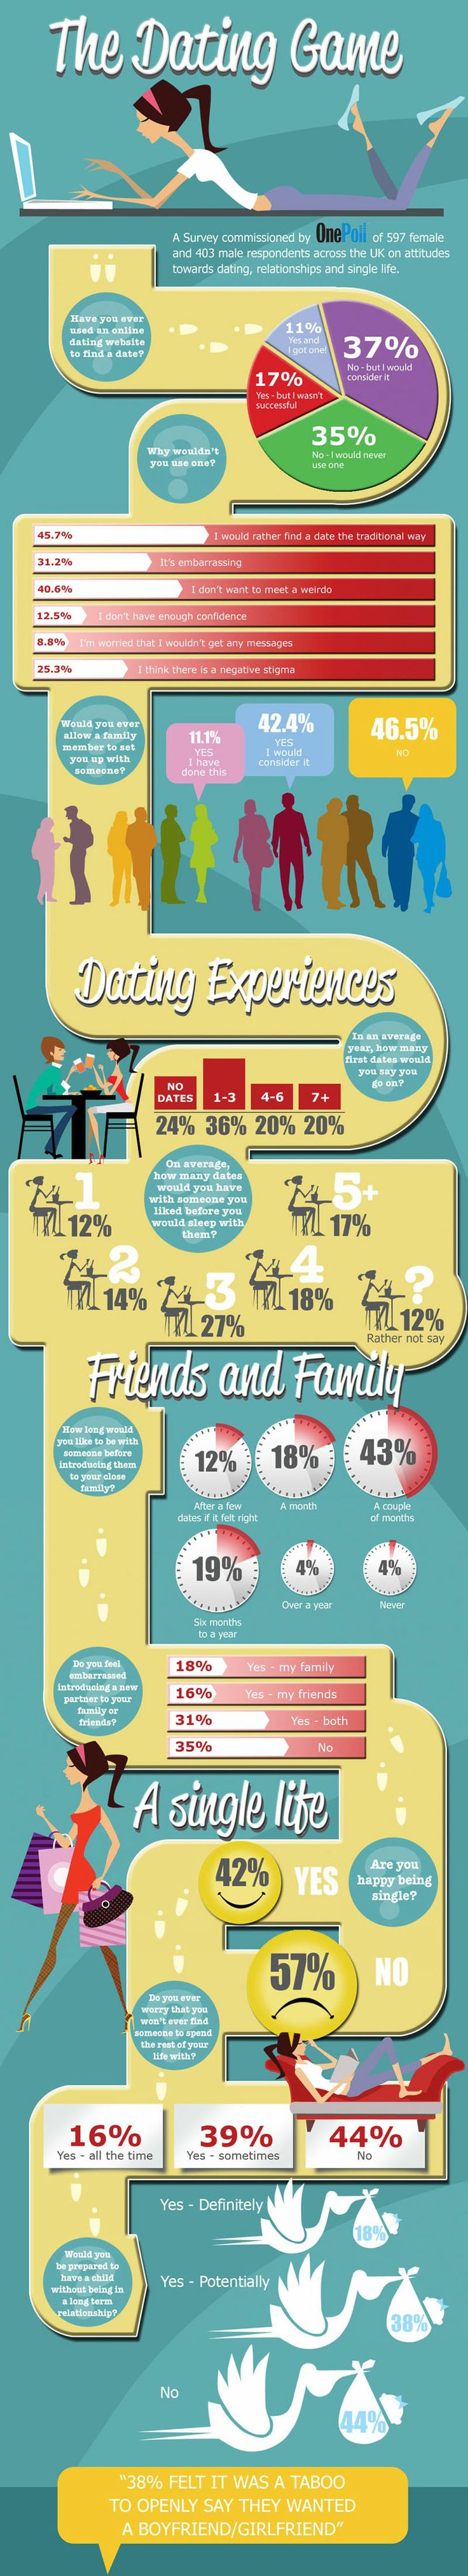 Infographic for a Survey commissioned by Onepoll on dating